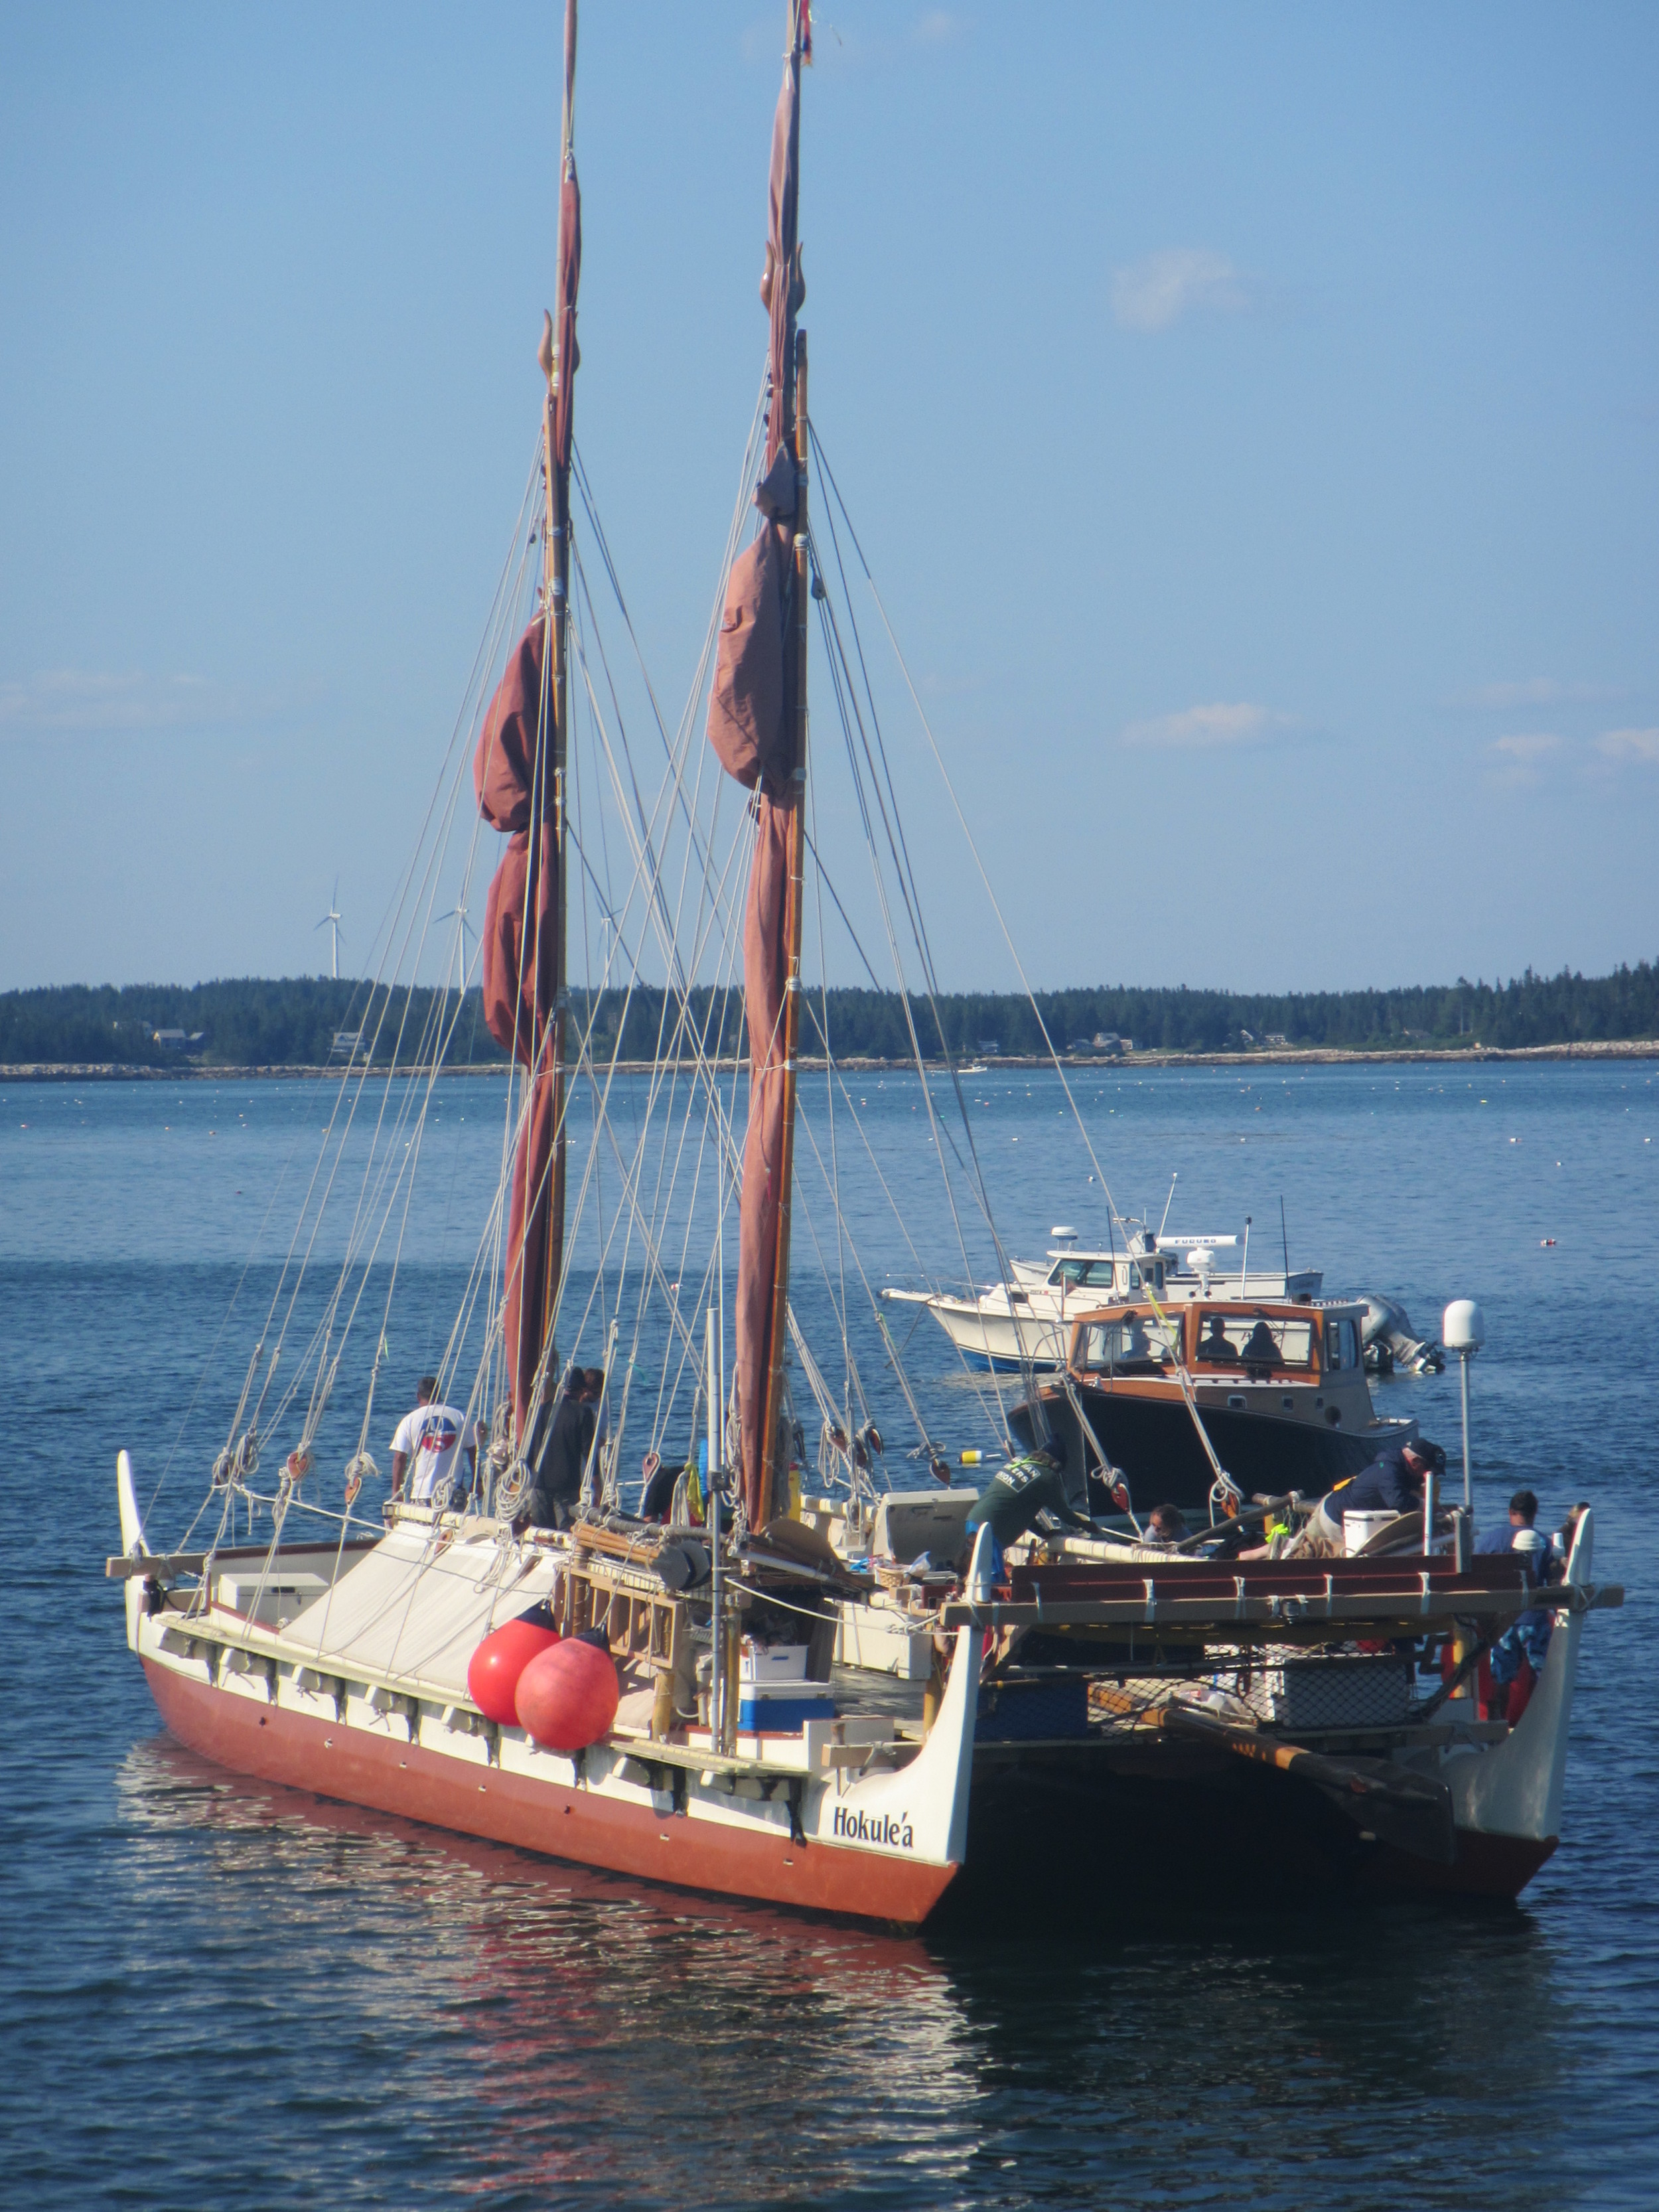 Hokule'a, a traditional sailing canoe from Hawai'i, paying Hurricane Island a visit on their Worldwide Voyage.